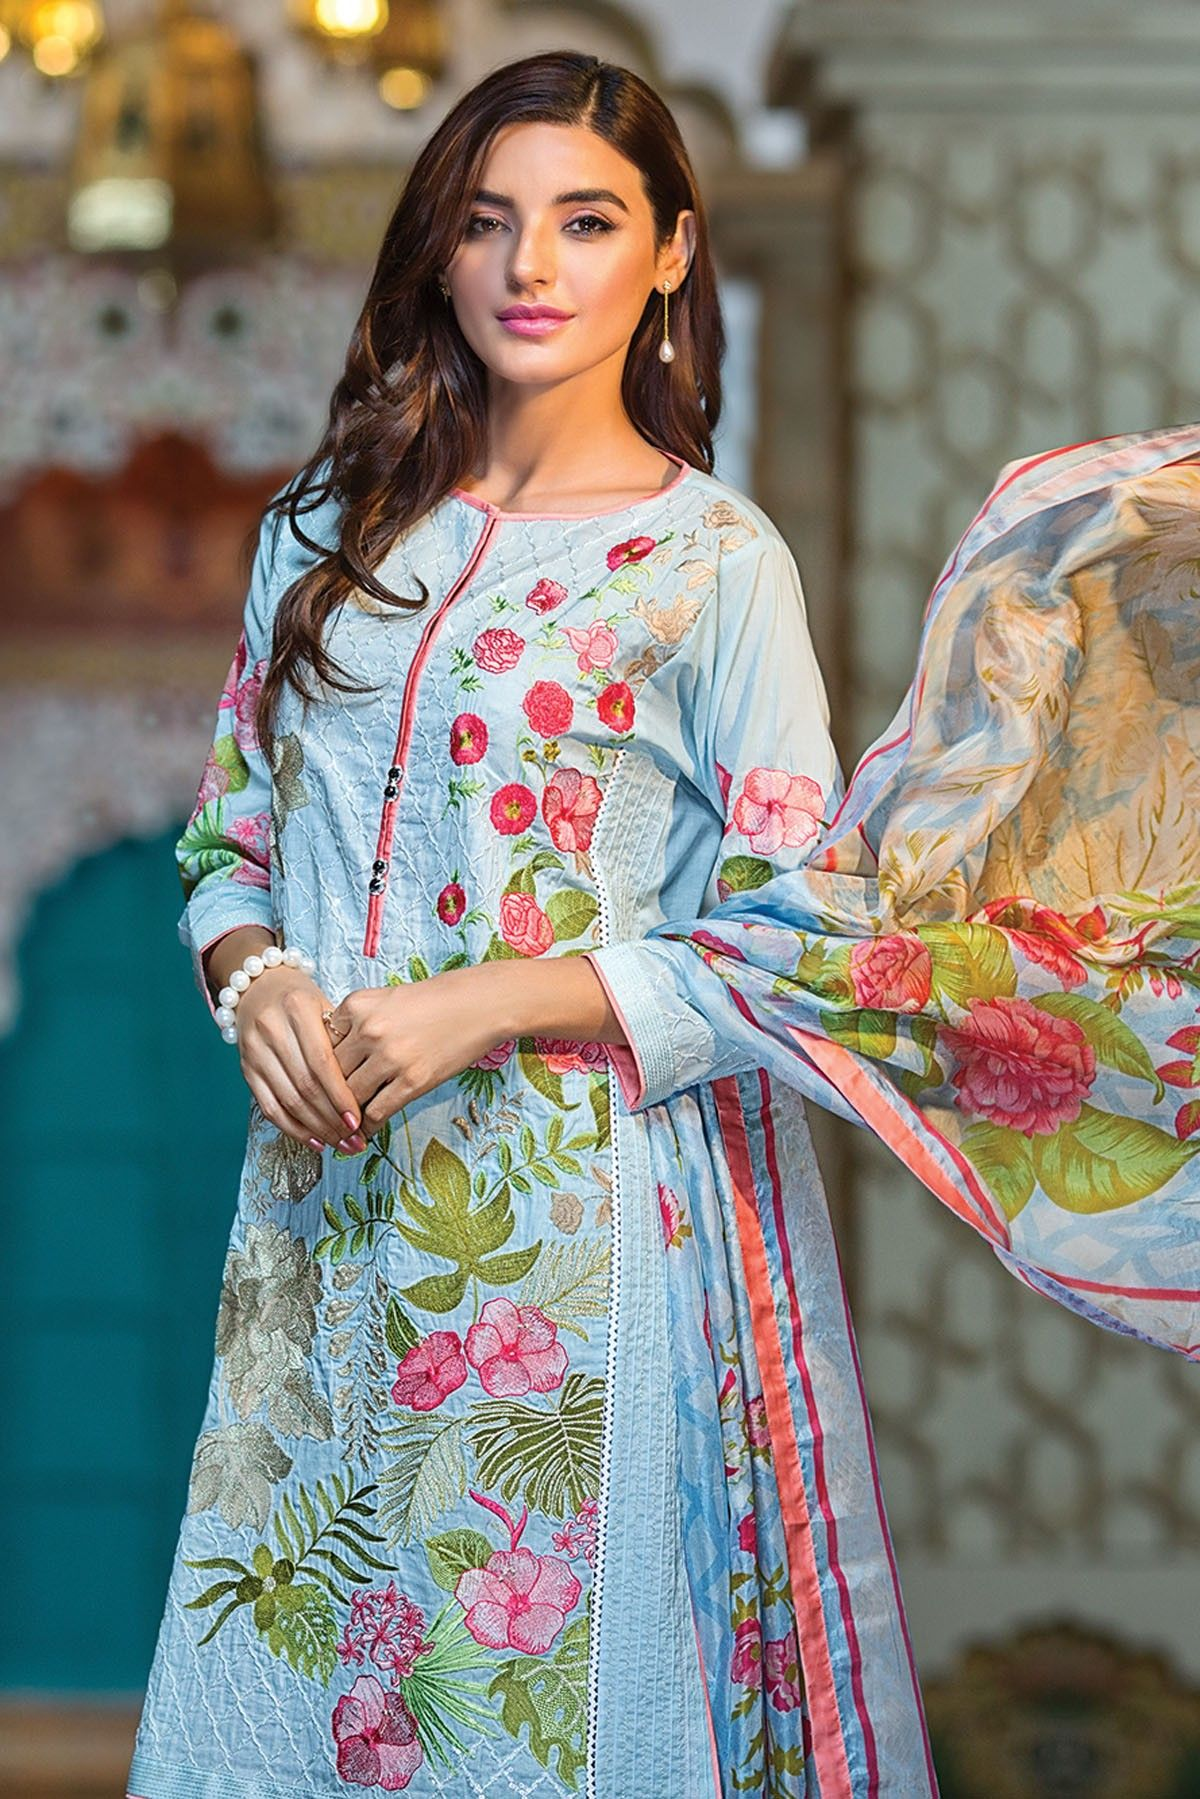 Warda spring summer collection 2016 vol 1 with prices beststylo com - Latest Designs Of Pakistani Dresses For Eid 2016 2017 Beststylo Com